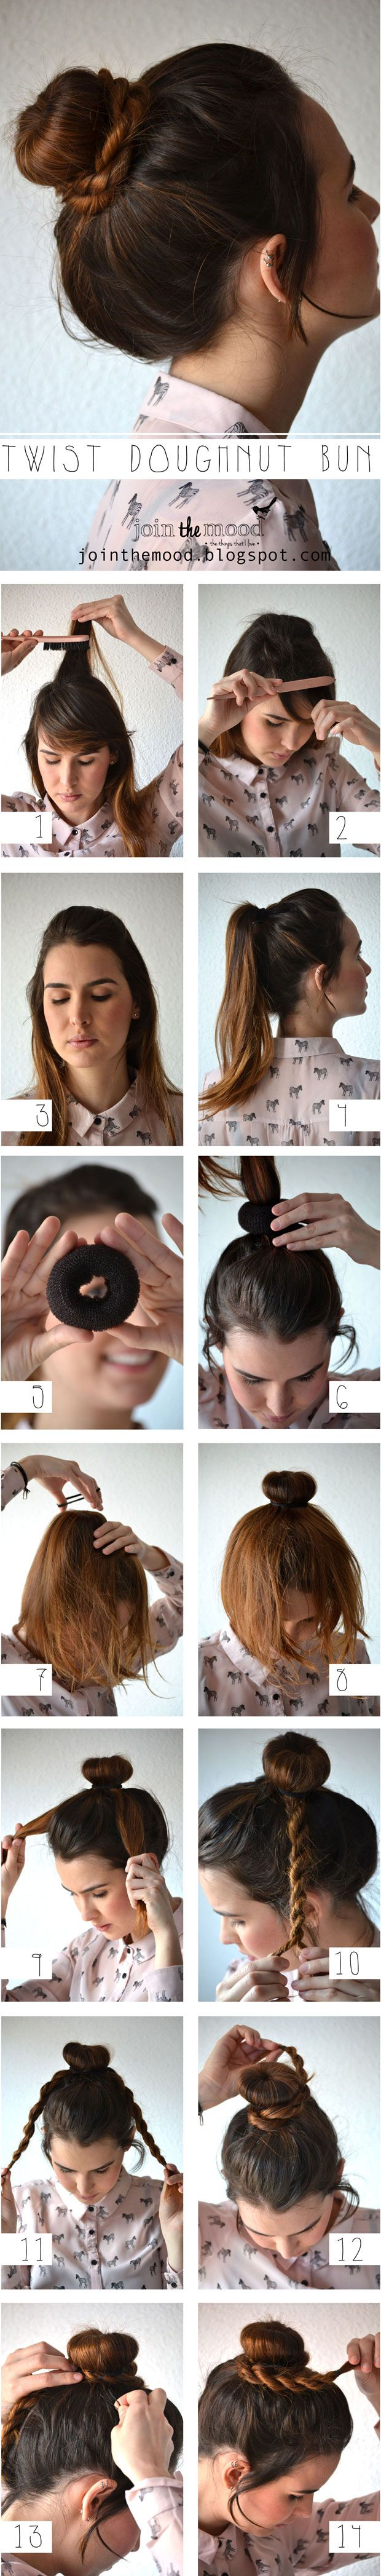 best braids n updos images on pinterest cute hairstyles hair